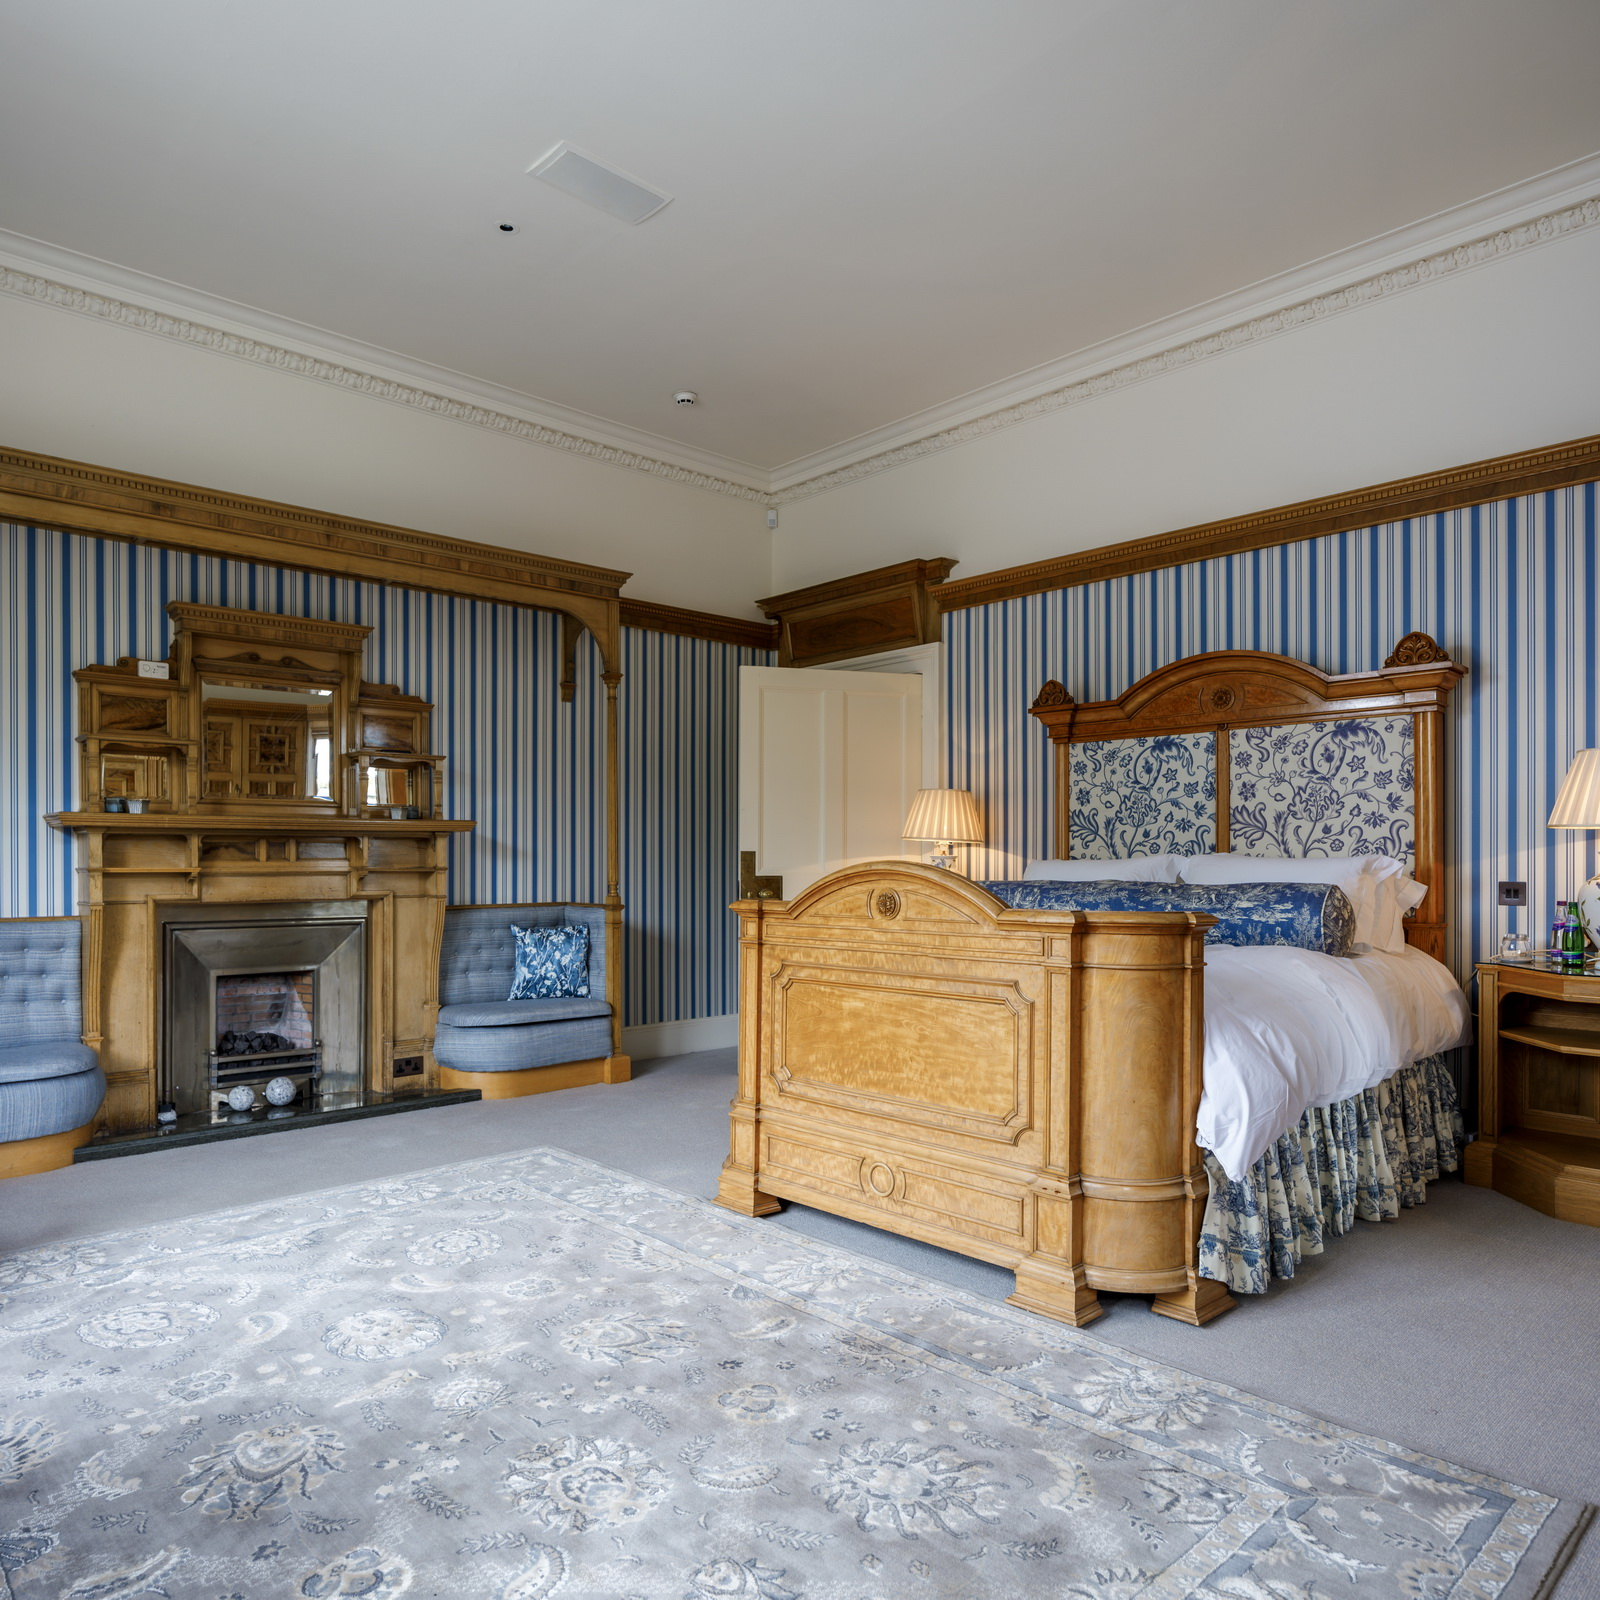 Auchterarder House - striped bedroom